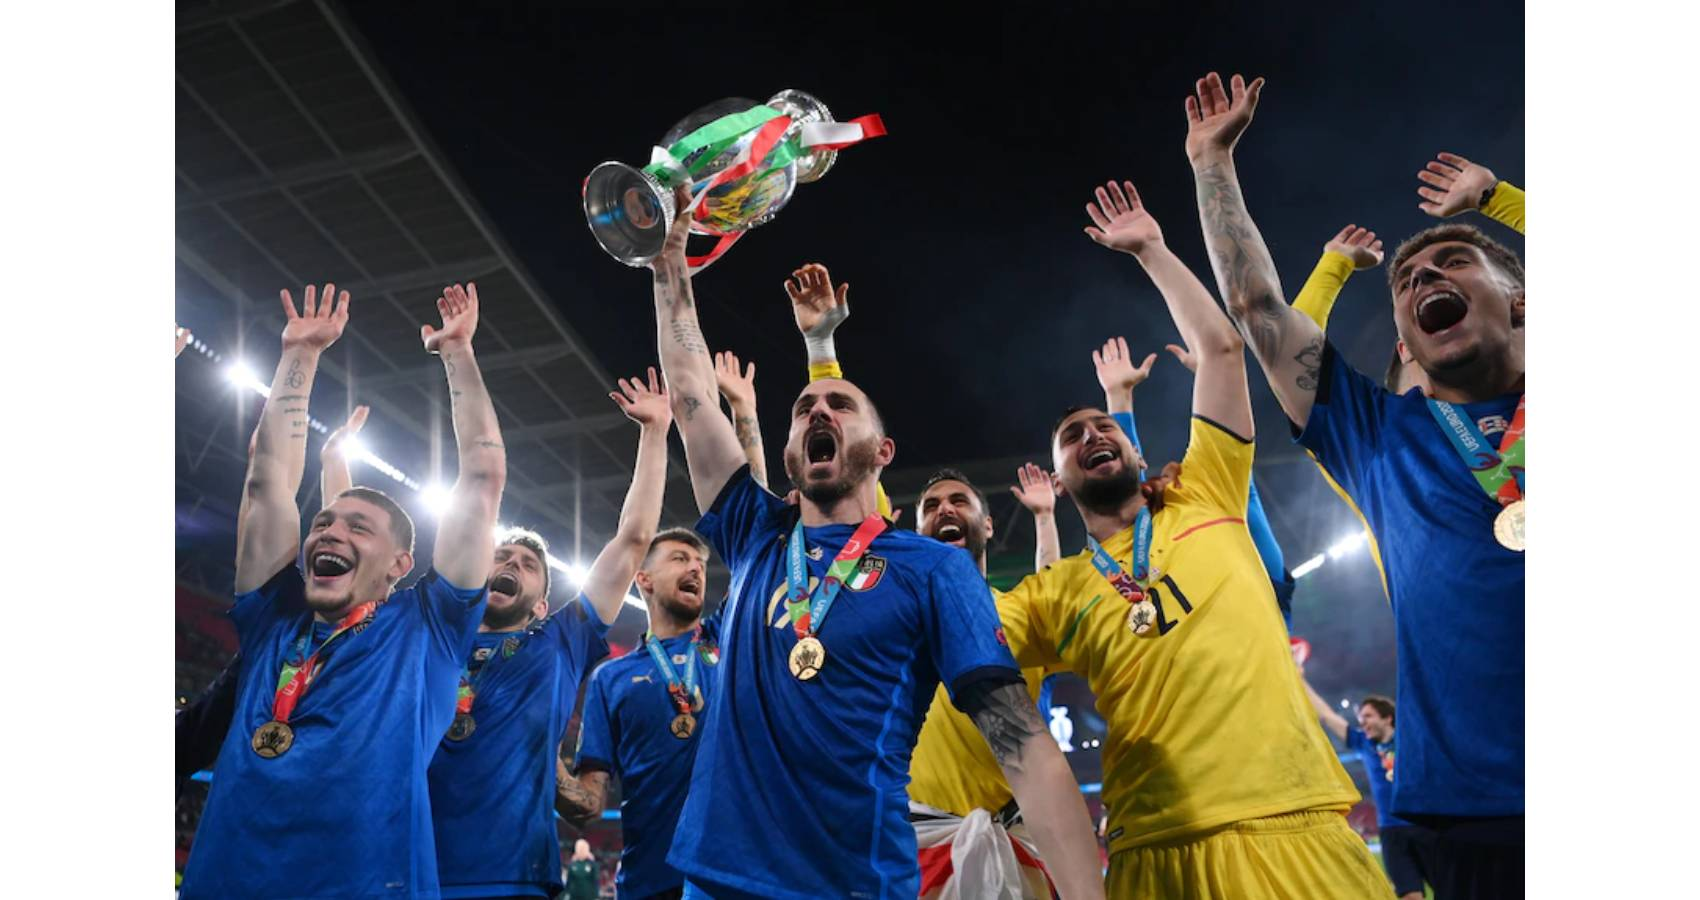 Italy Crowned 2020 European Champions Against England In A 3-2 Penalty Shootout